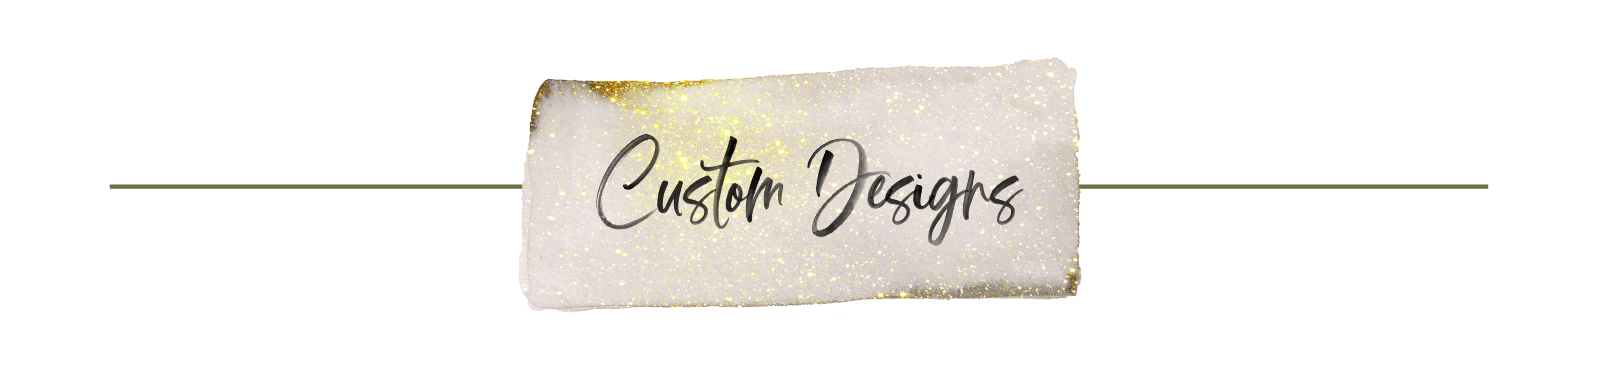 ficus and fig design wedding stationery custom designs.png